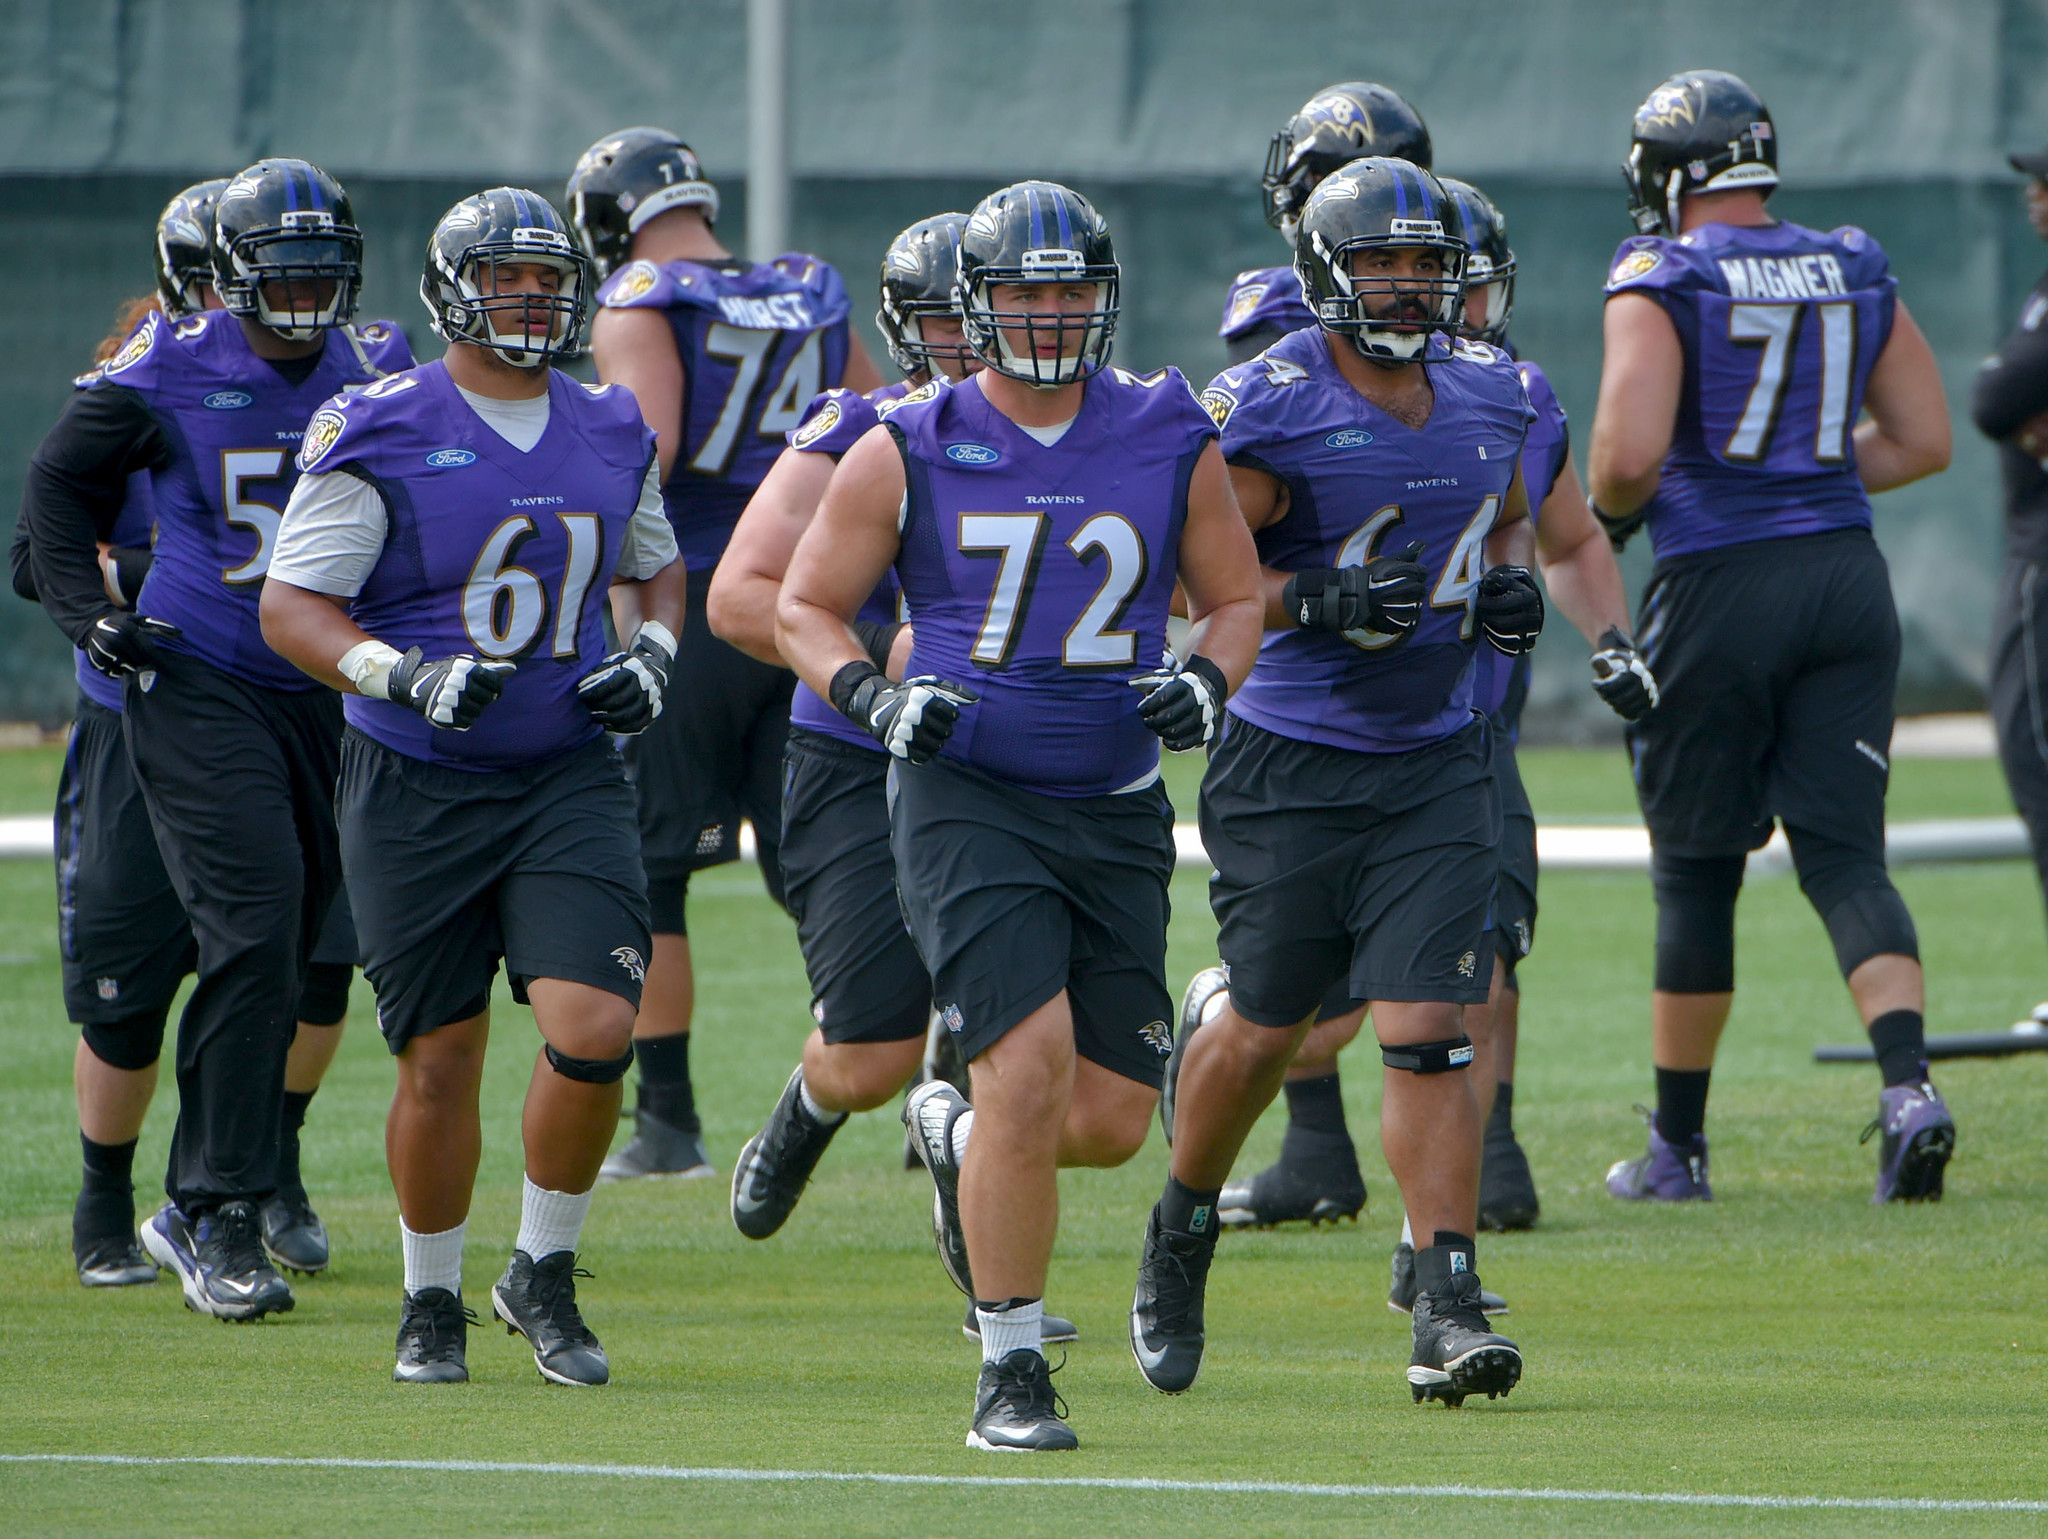 Bal-projecting-the-offensive-depth-chart-for-the-ravens-20170521